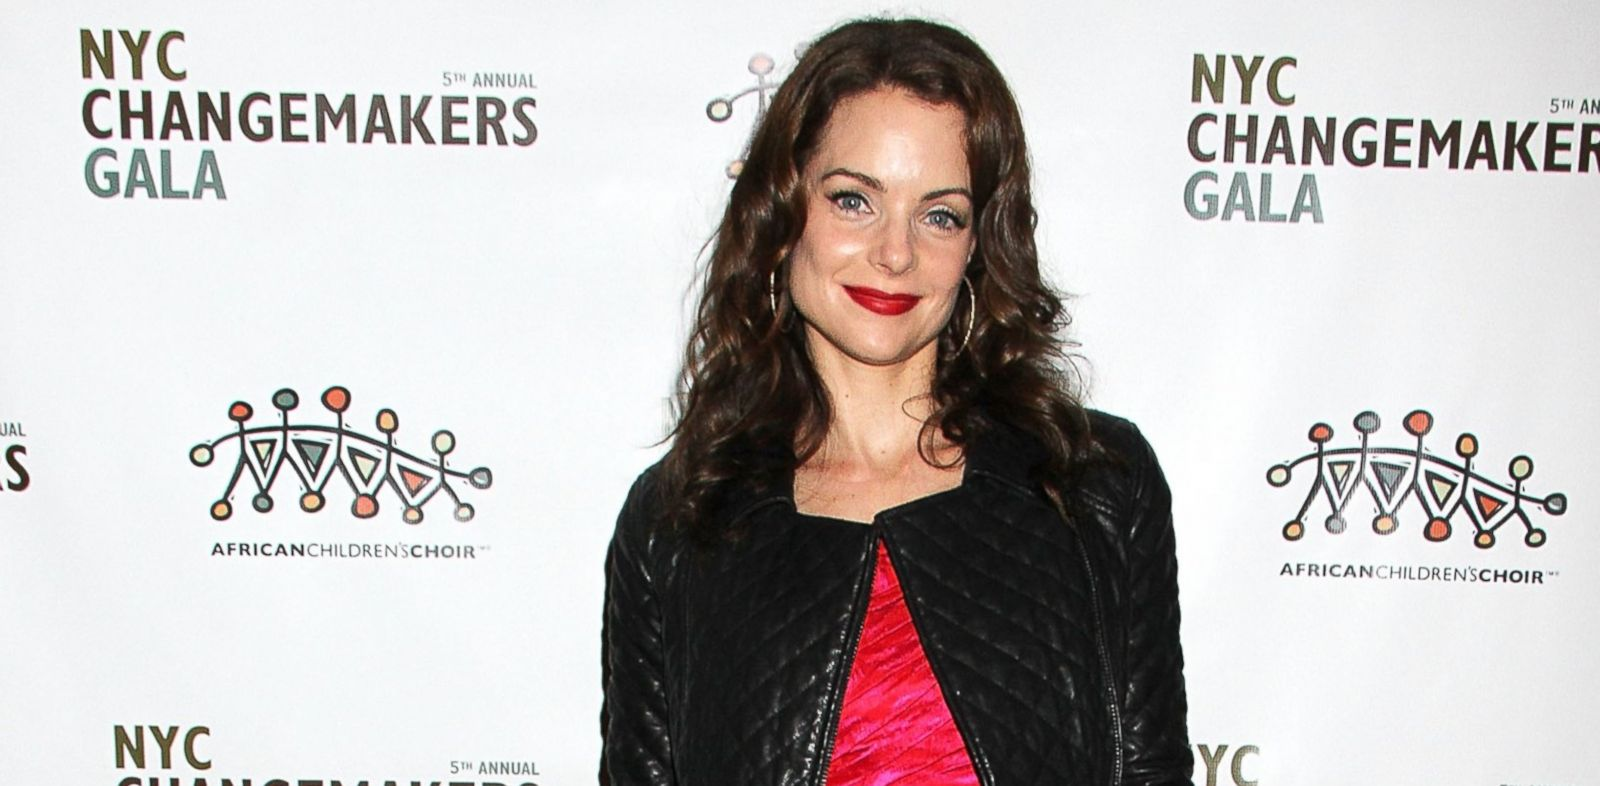 PHOTO: In this file photo, Kimberly Williams-Paisley is pictured on Nov. 21, 2013 in New York City.